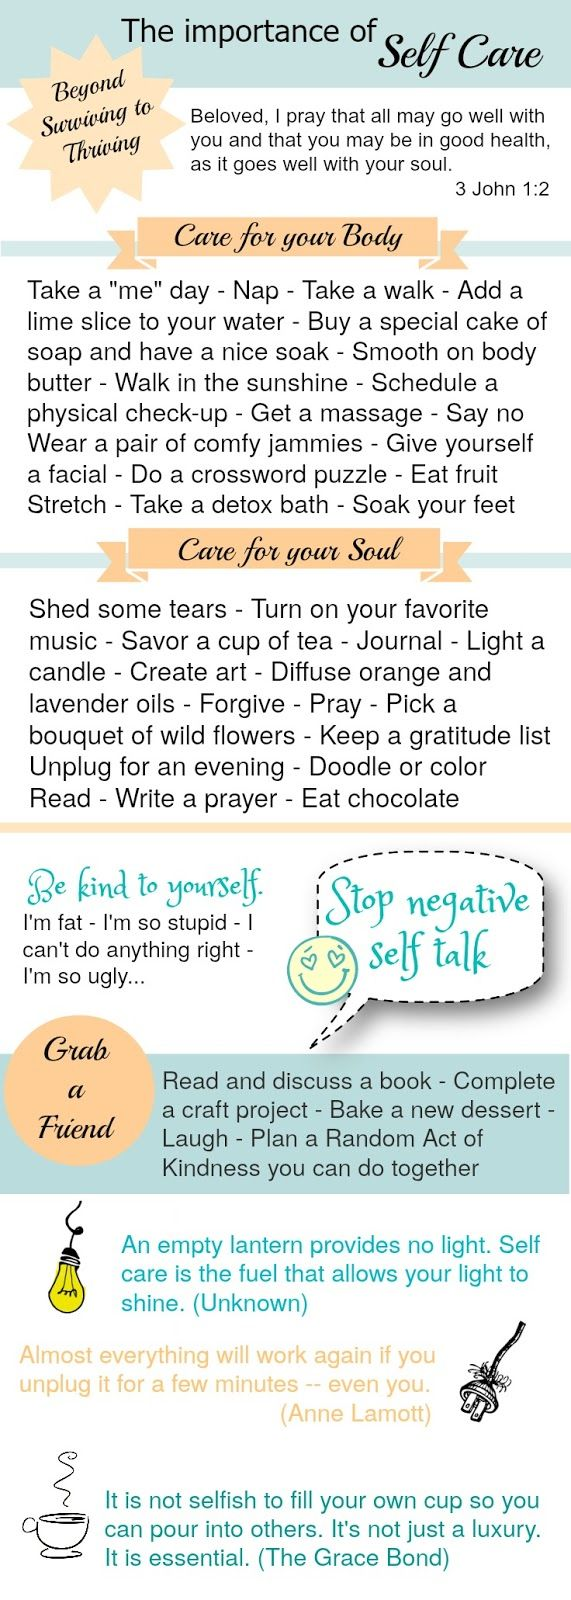 Self-care is never a selfish act – it is simply good stewardship of the only gift I have, the gift I was put on earth to offer to others....